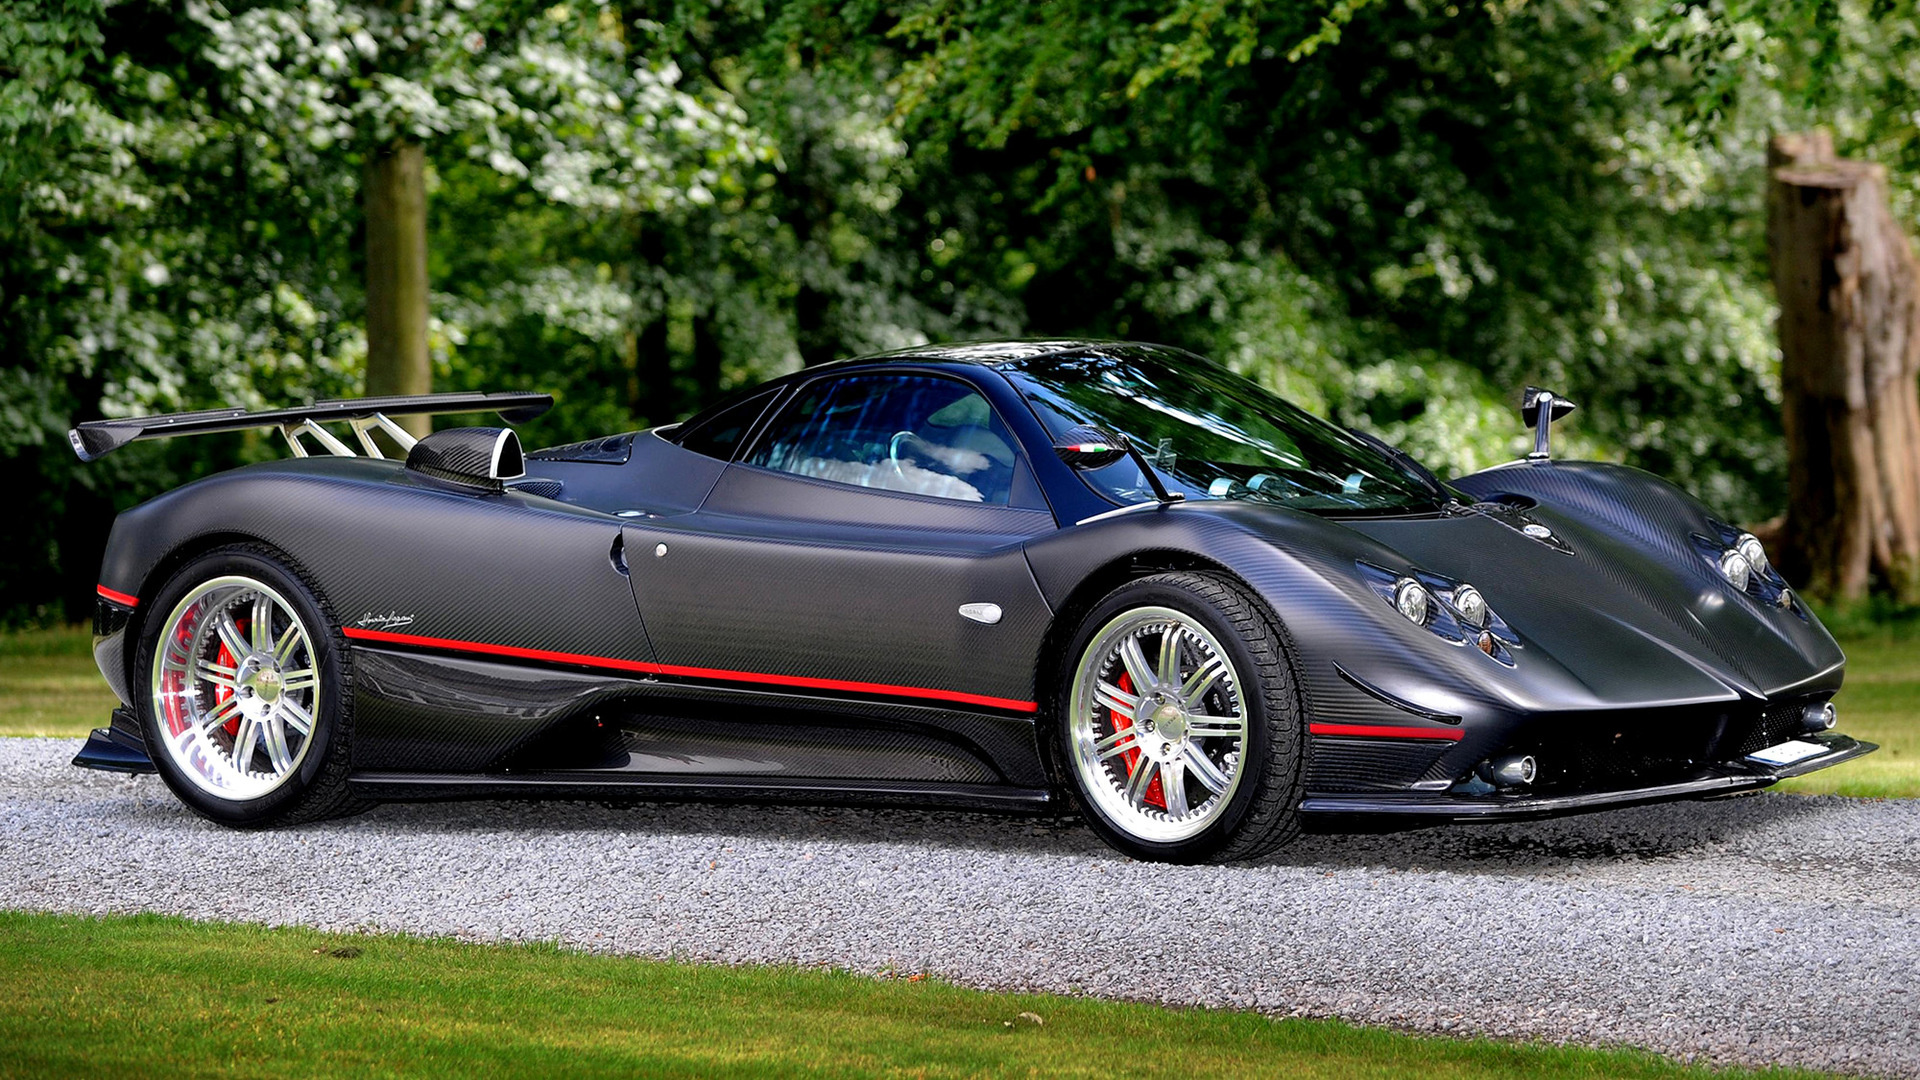 pagani zonda f 2005 wallpapers and hd images car pixel. Black Bedroom Furniture Sets. Home Design Ideas